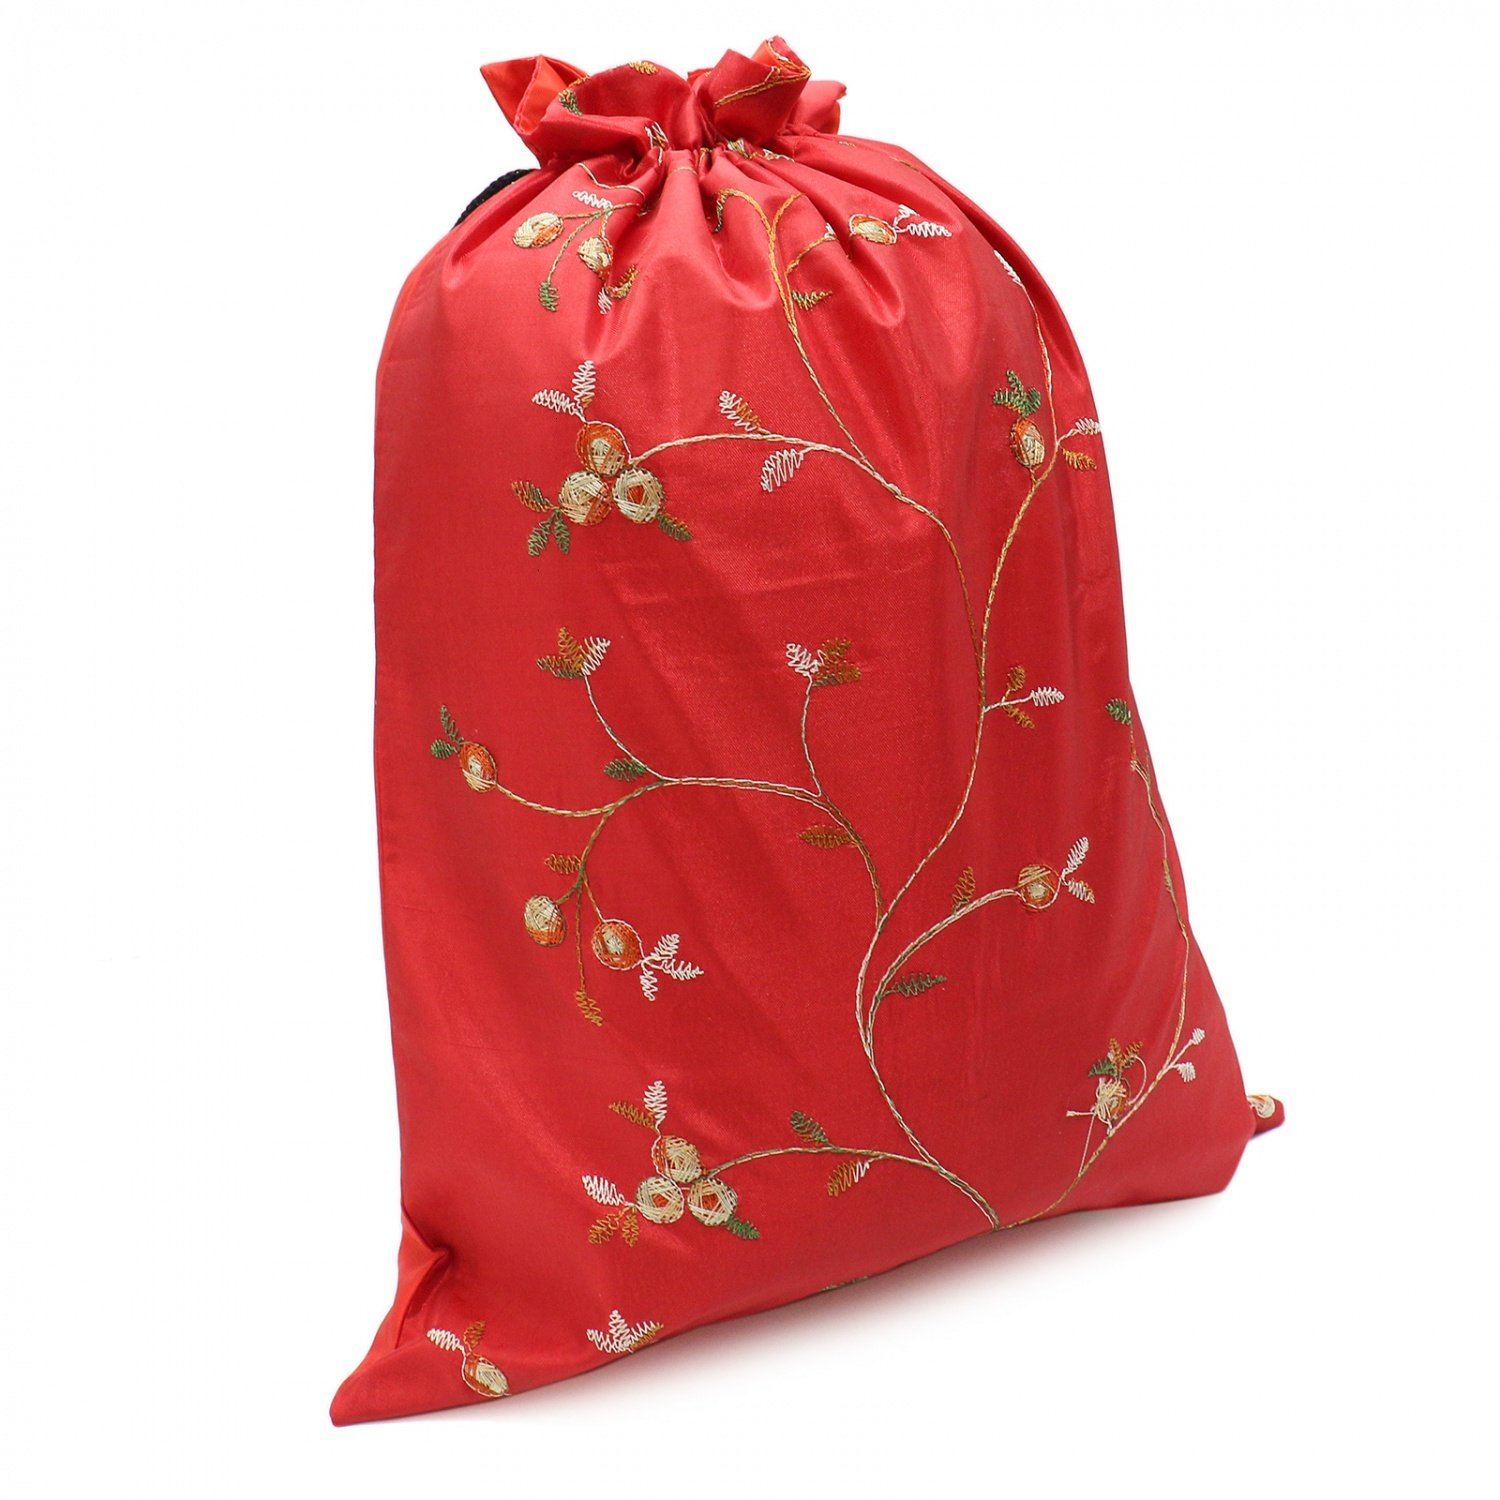 Buorsa Flower Design Embroidered Silk Jacquard Travel Bag Underwear Cloth Shoe Bags Pouch Purse , Set of 3--- 14'' x 11''(L x W) by Buorsa (Image #6)